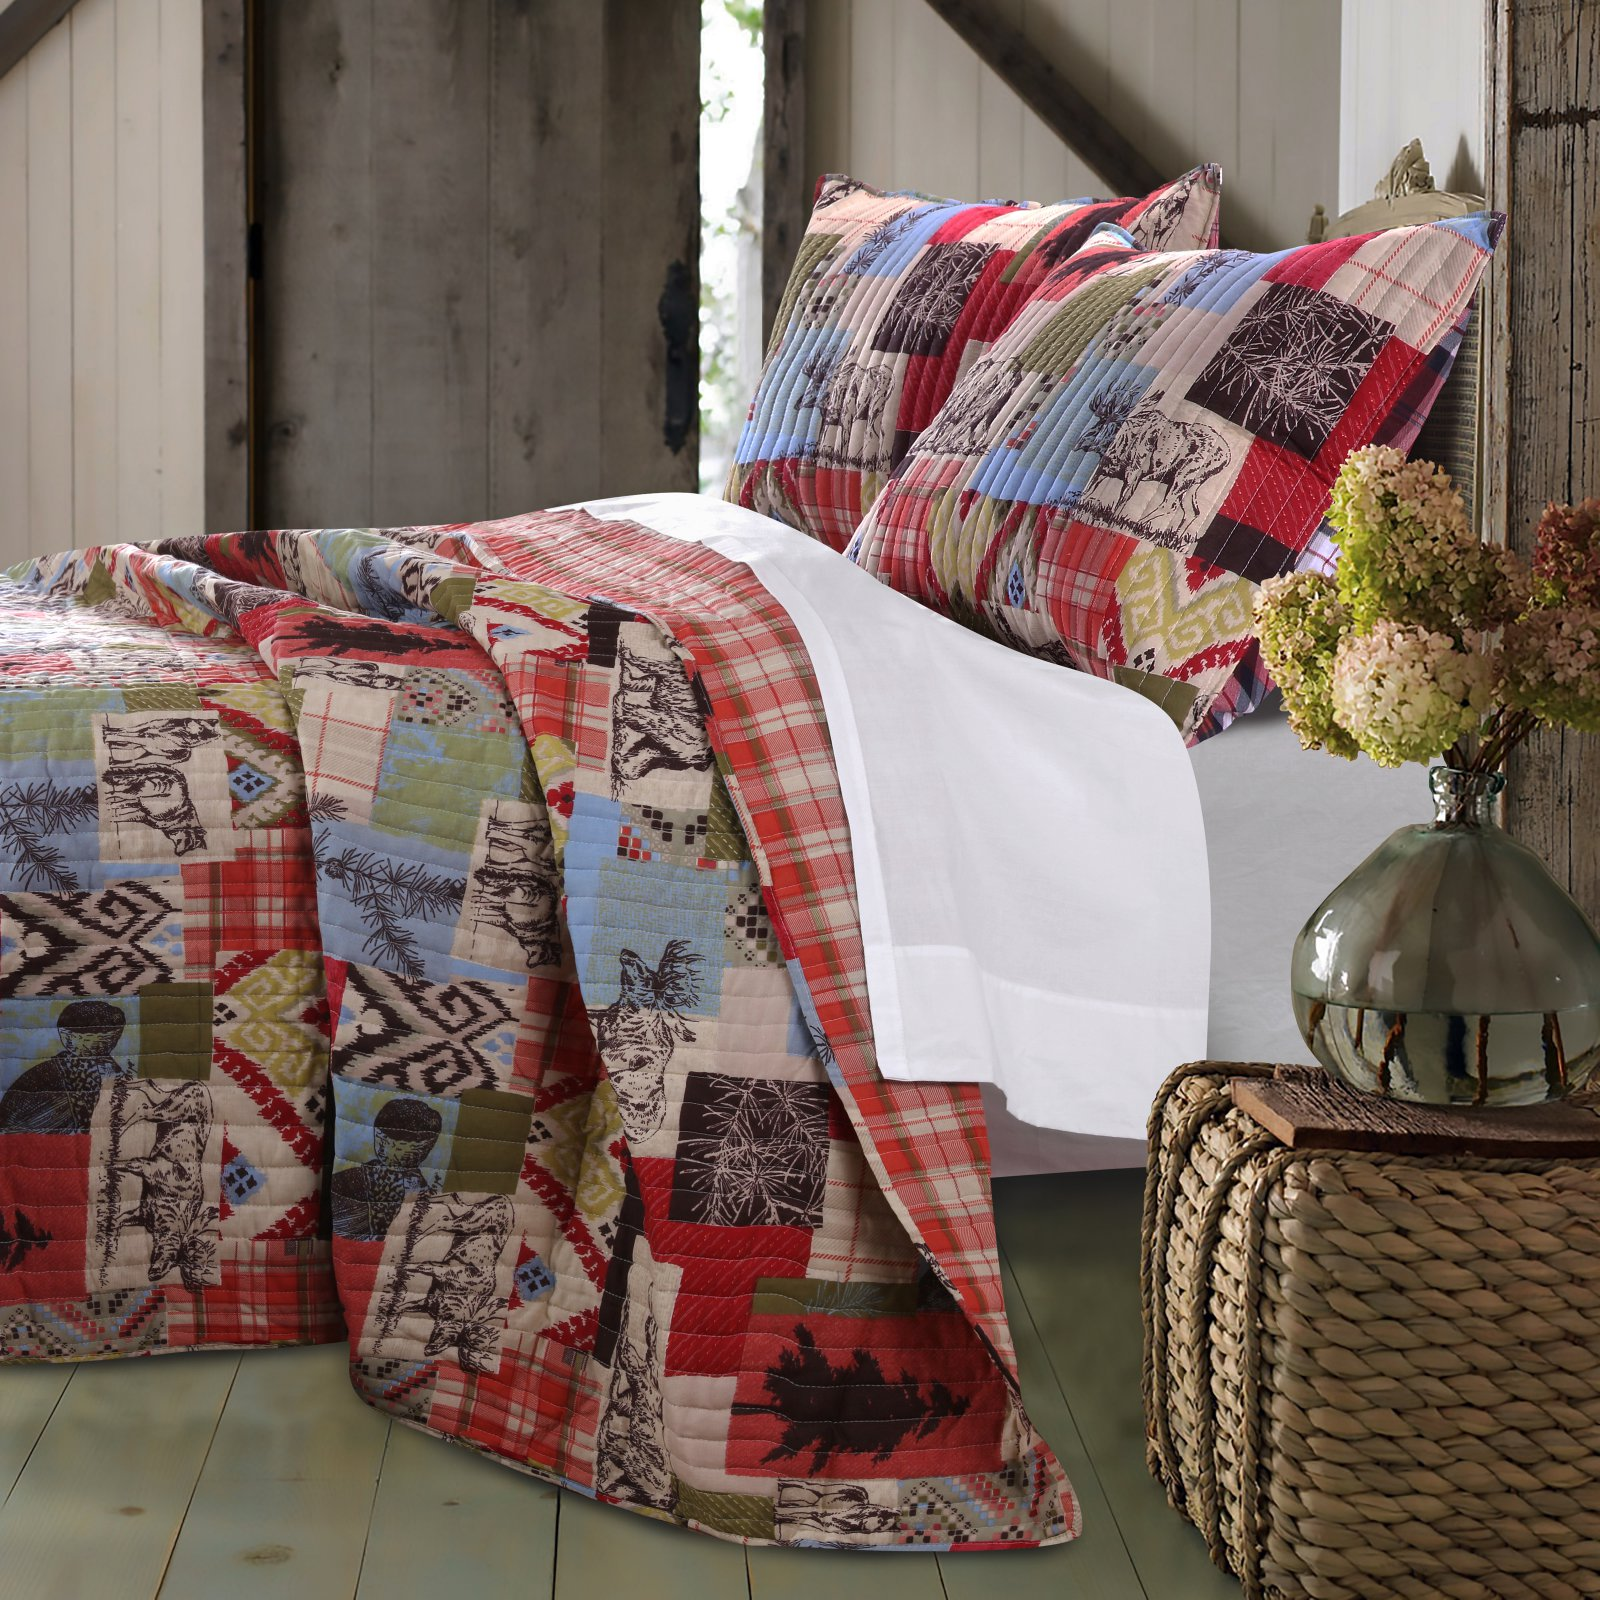 Rustic Lodge Quilt Set by Greenland Home Fashions by Greenland Home Fashions